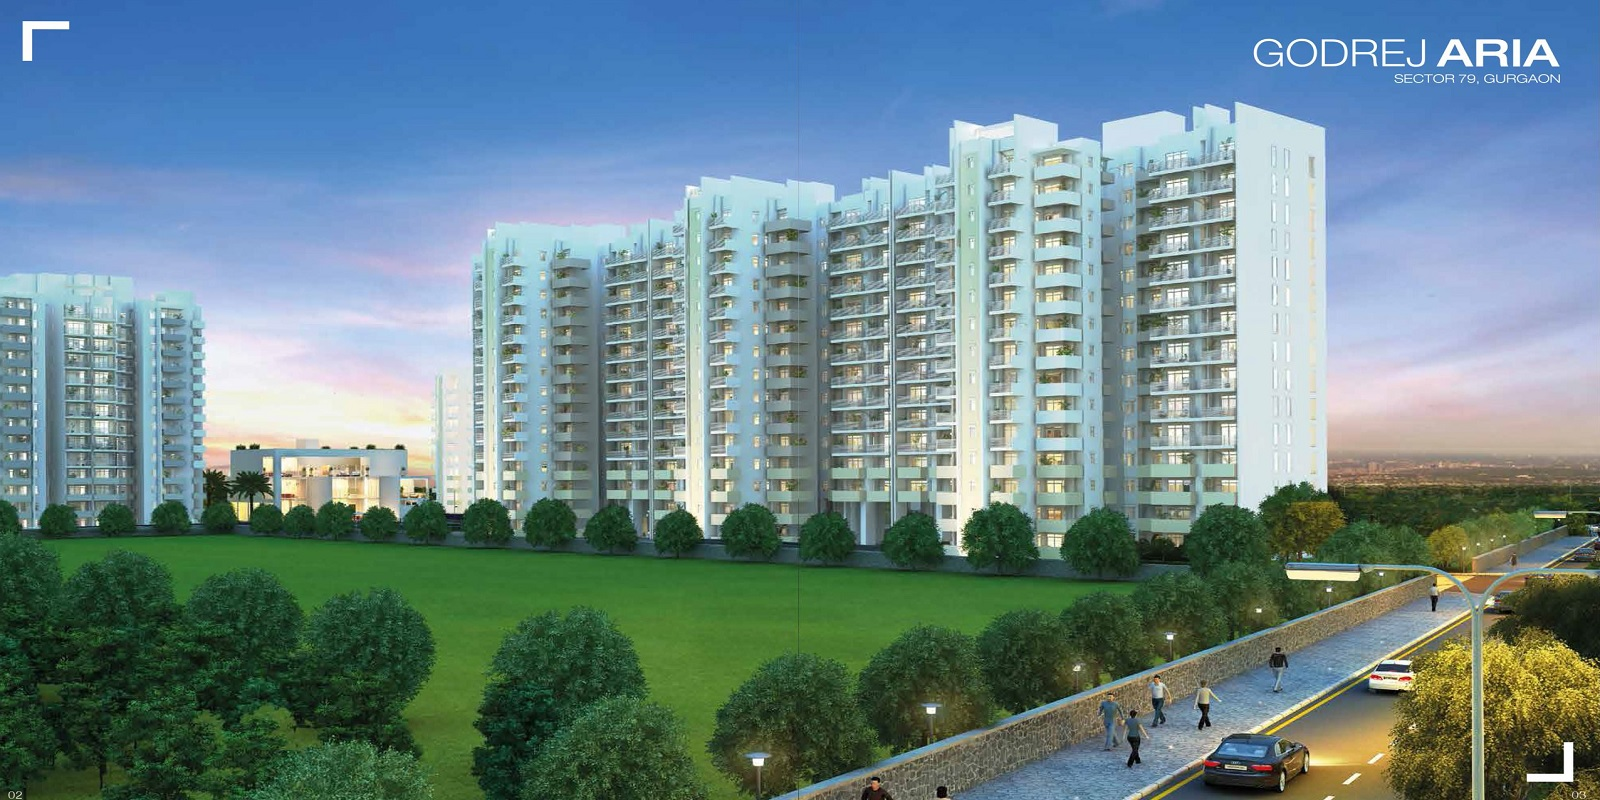 godrej aria project large image2